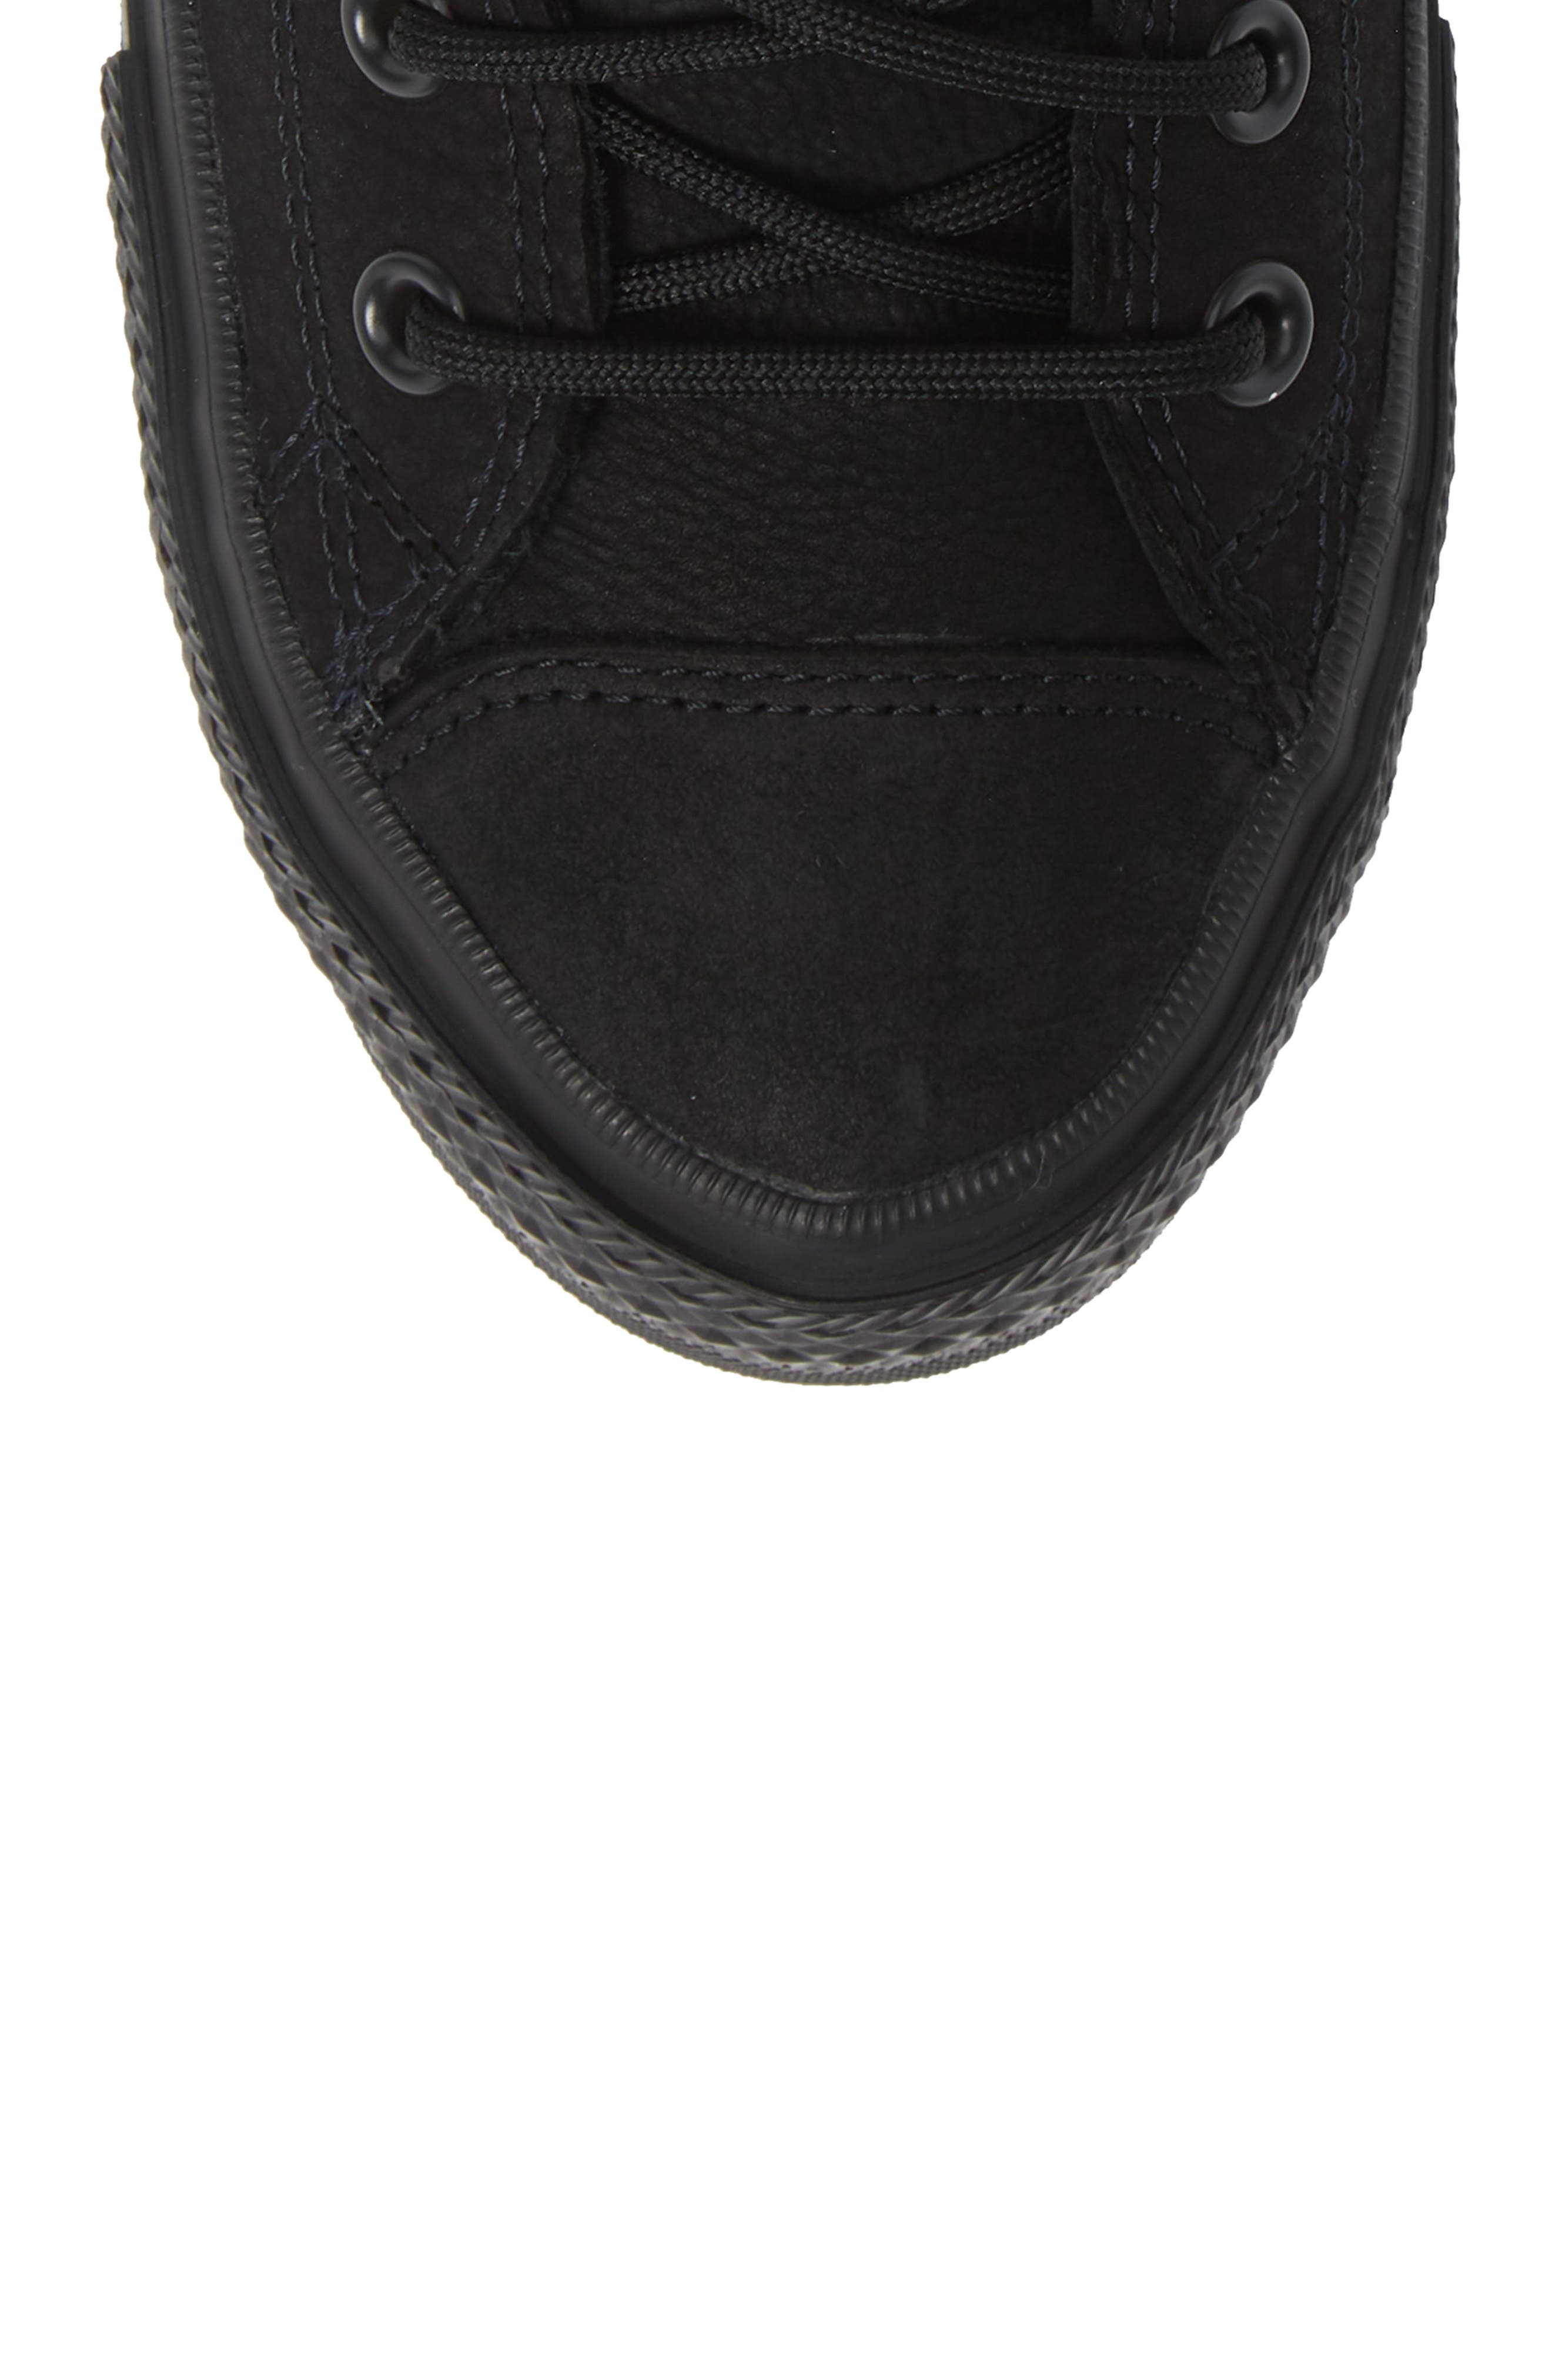 CONVERSE, Chuck Taylor<sup>®</sup> All Star<sup>®</sup> Counter Climate Waterproof Sneaker, Alternate thumbnail 5, color, BLACK/ BLACK/ BLACK